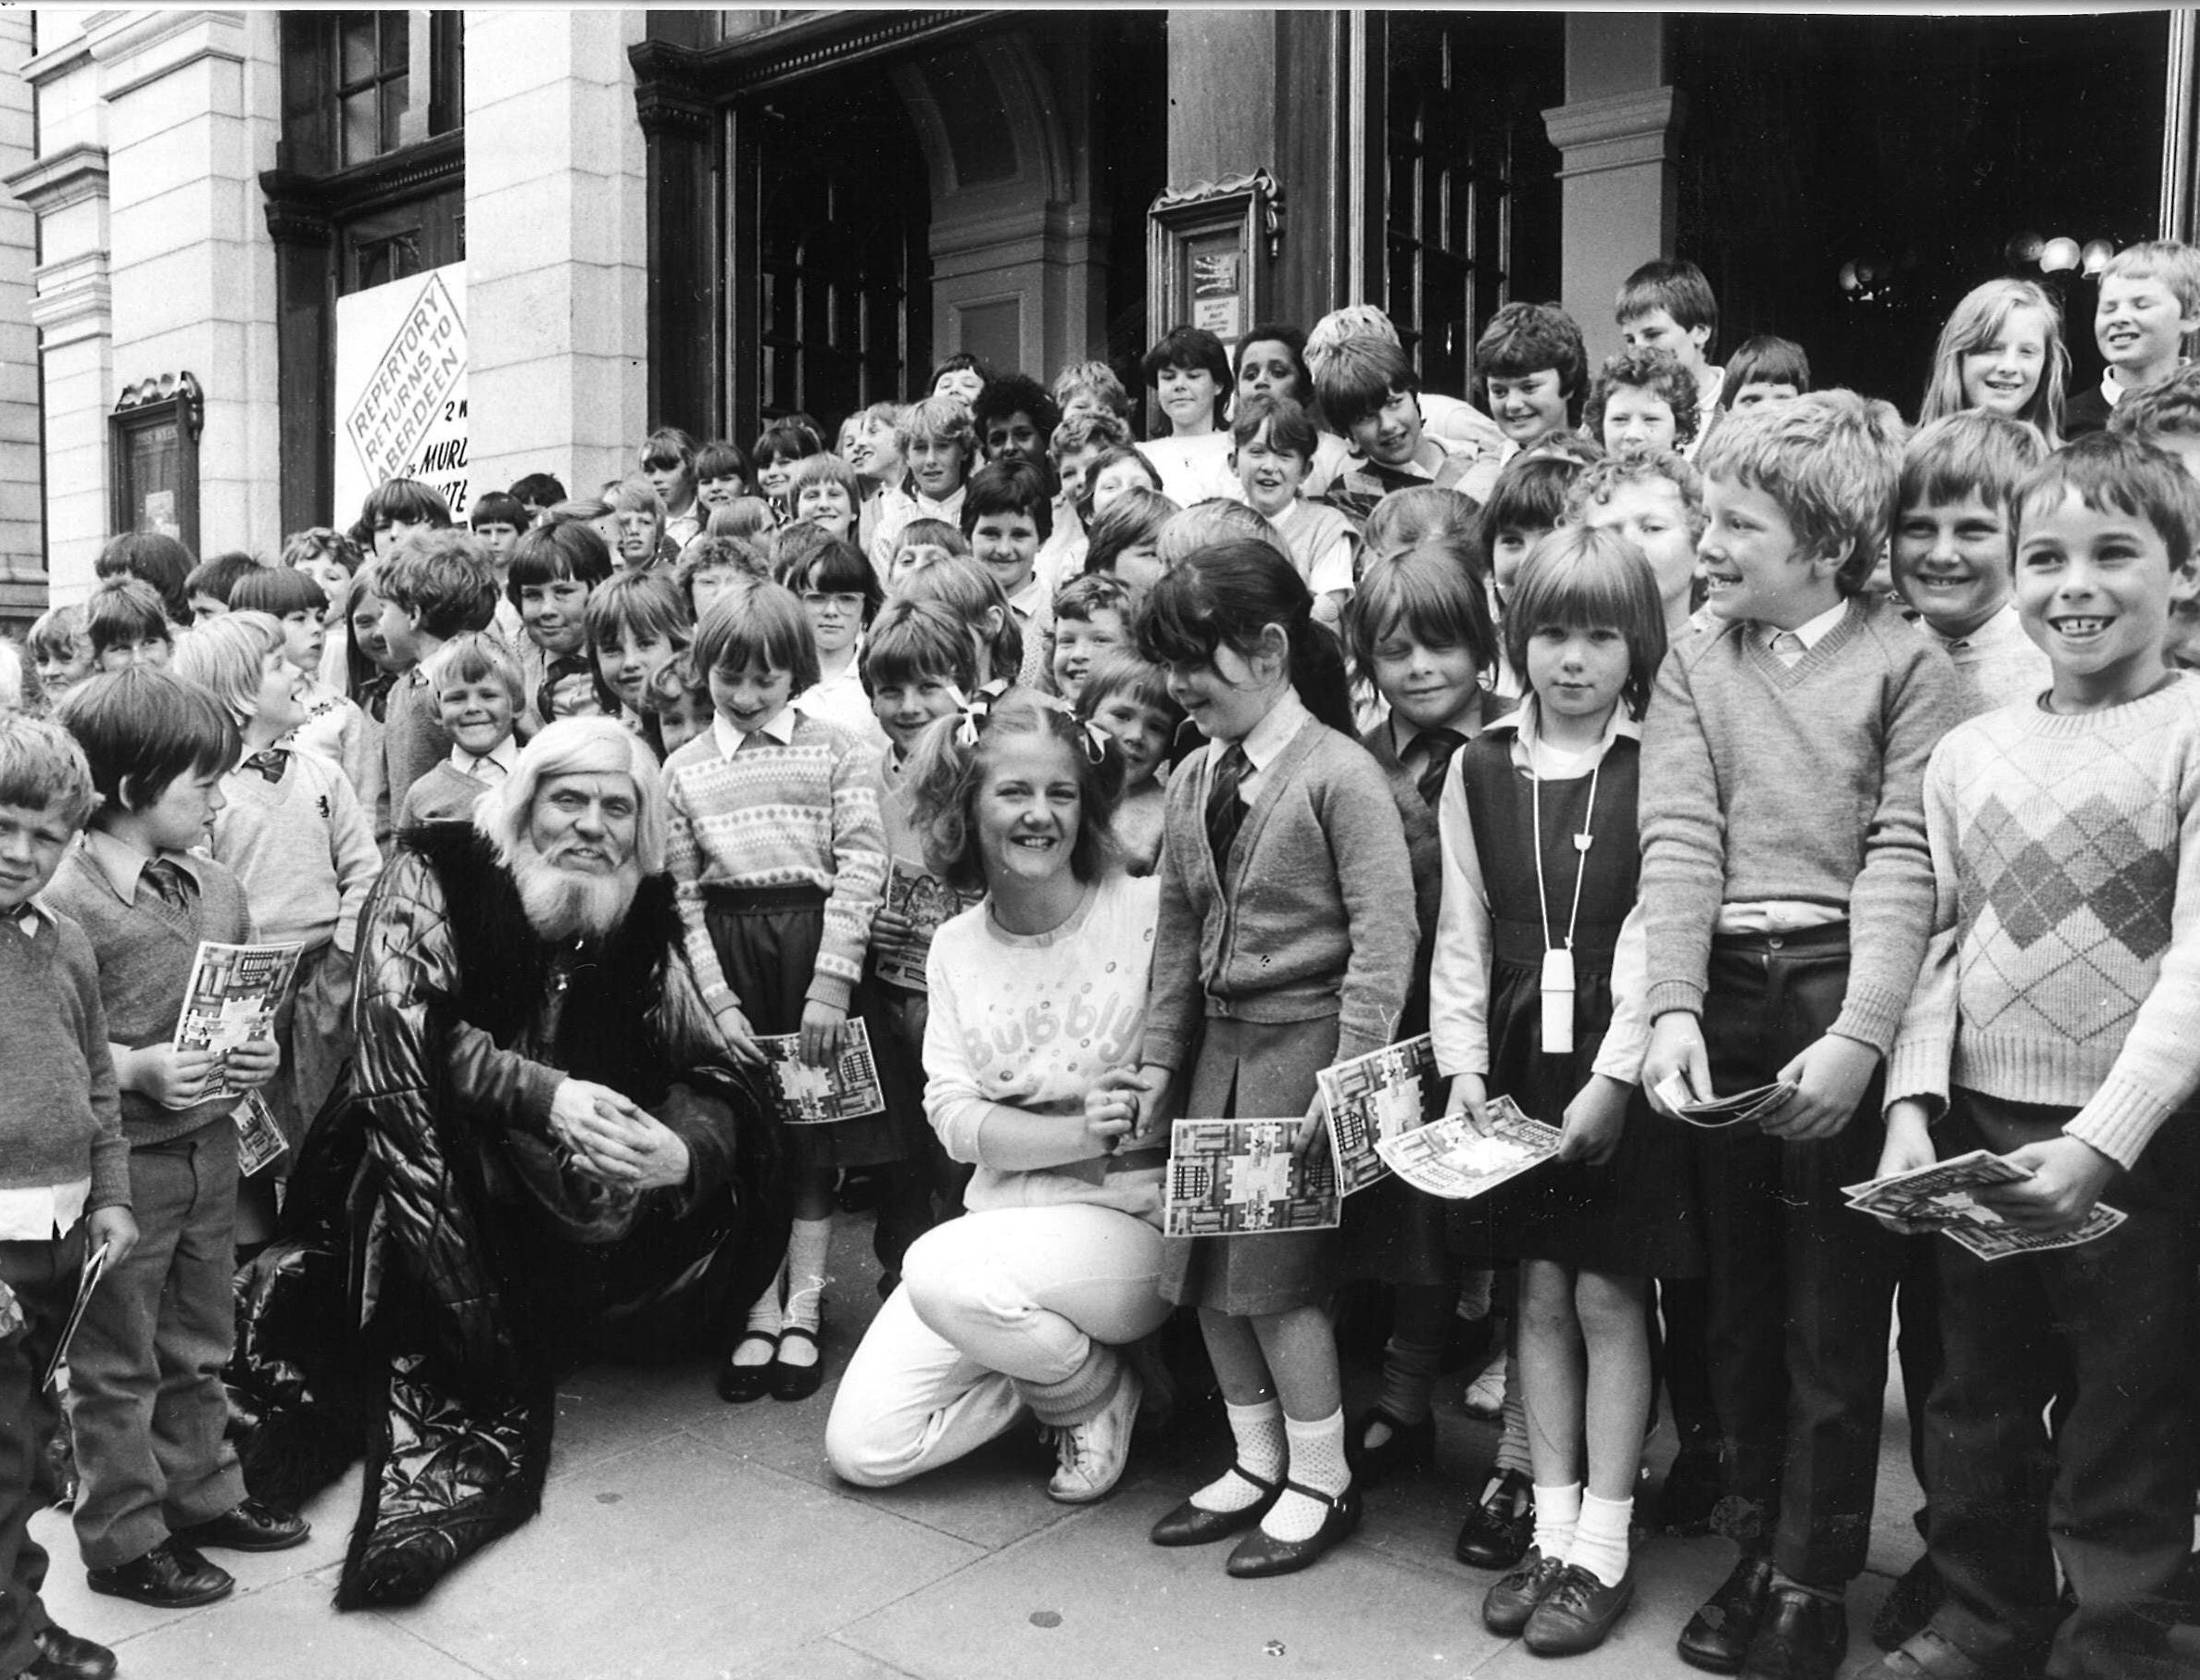 Pupils from St Combs Primary met the cast of Mr Merlin in 1985.